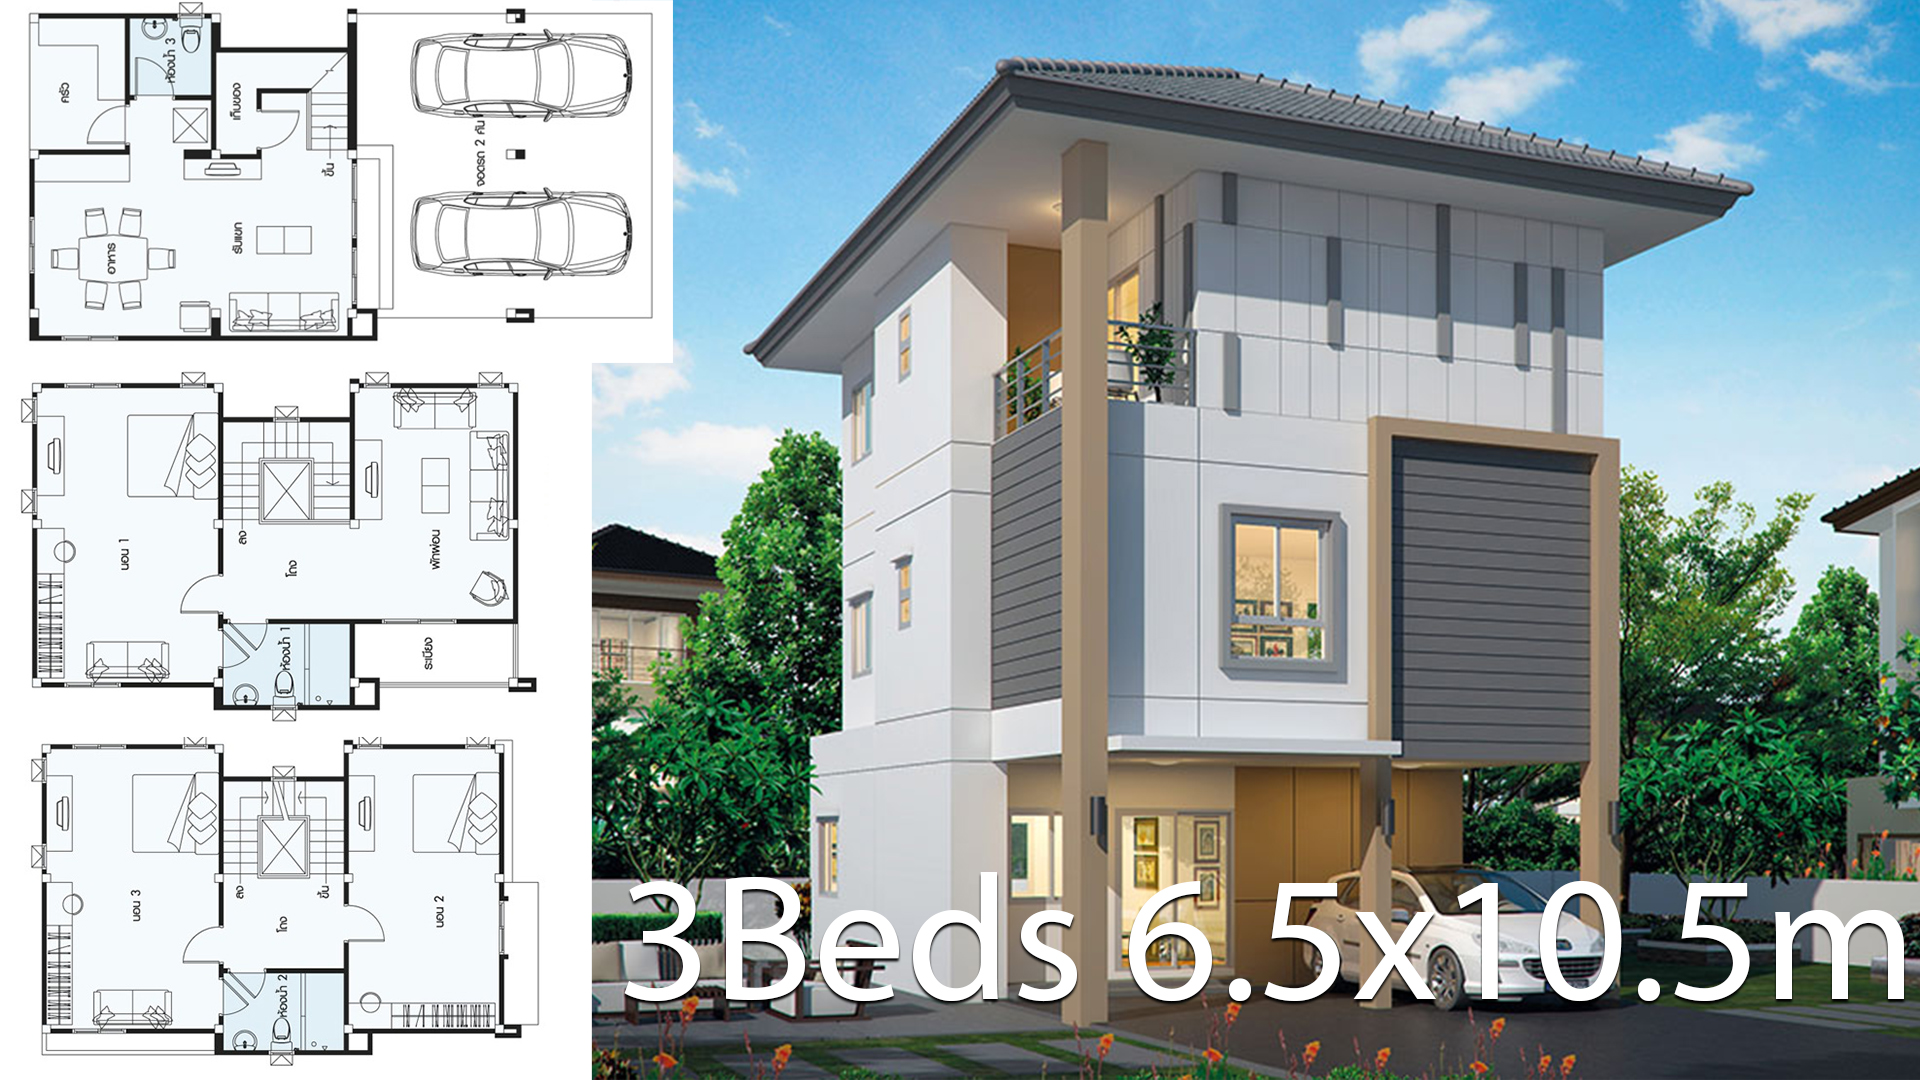 Home design 6.5×10.5m with 3 bedrooms